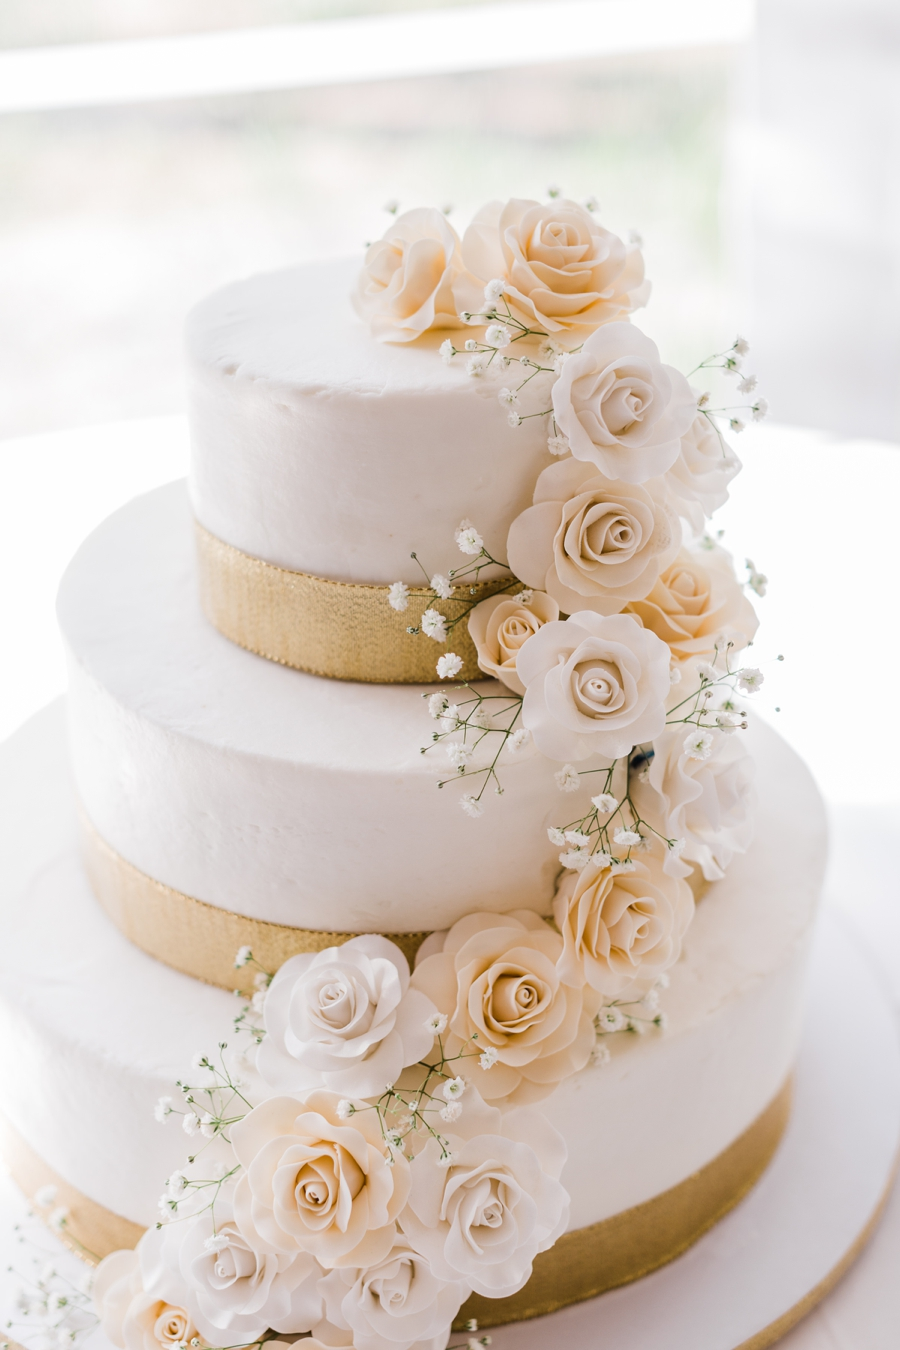 White and gold wedding cake by Sugar Shell in Jackson Hole